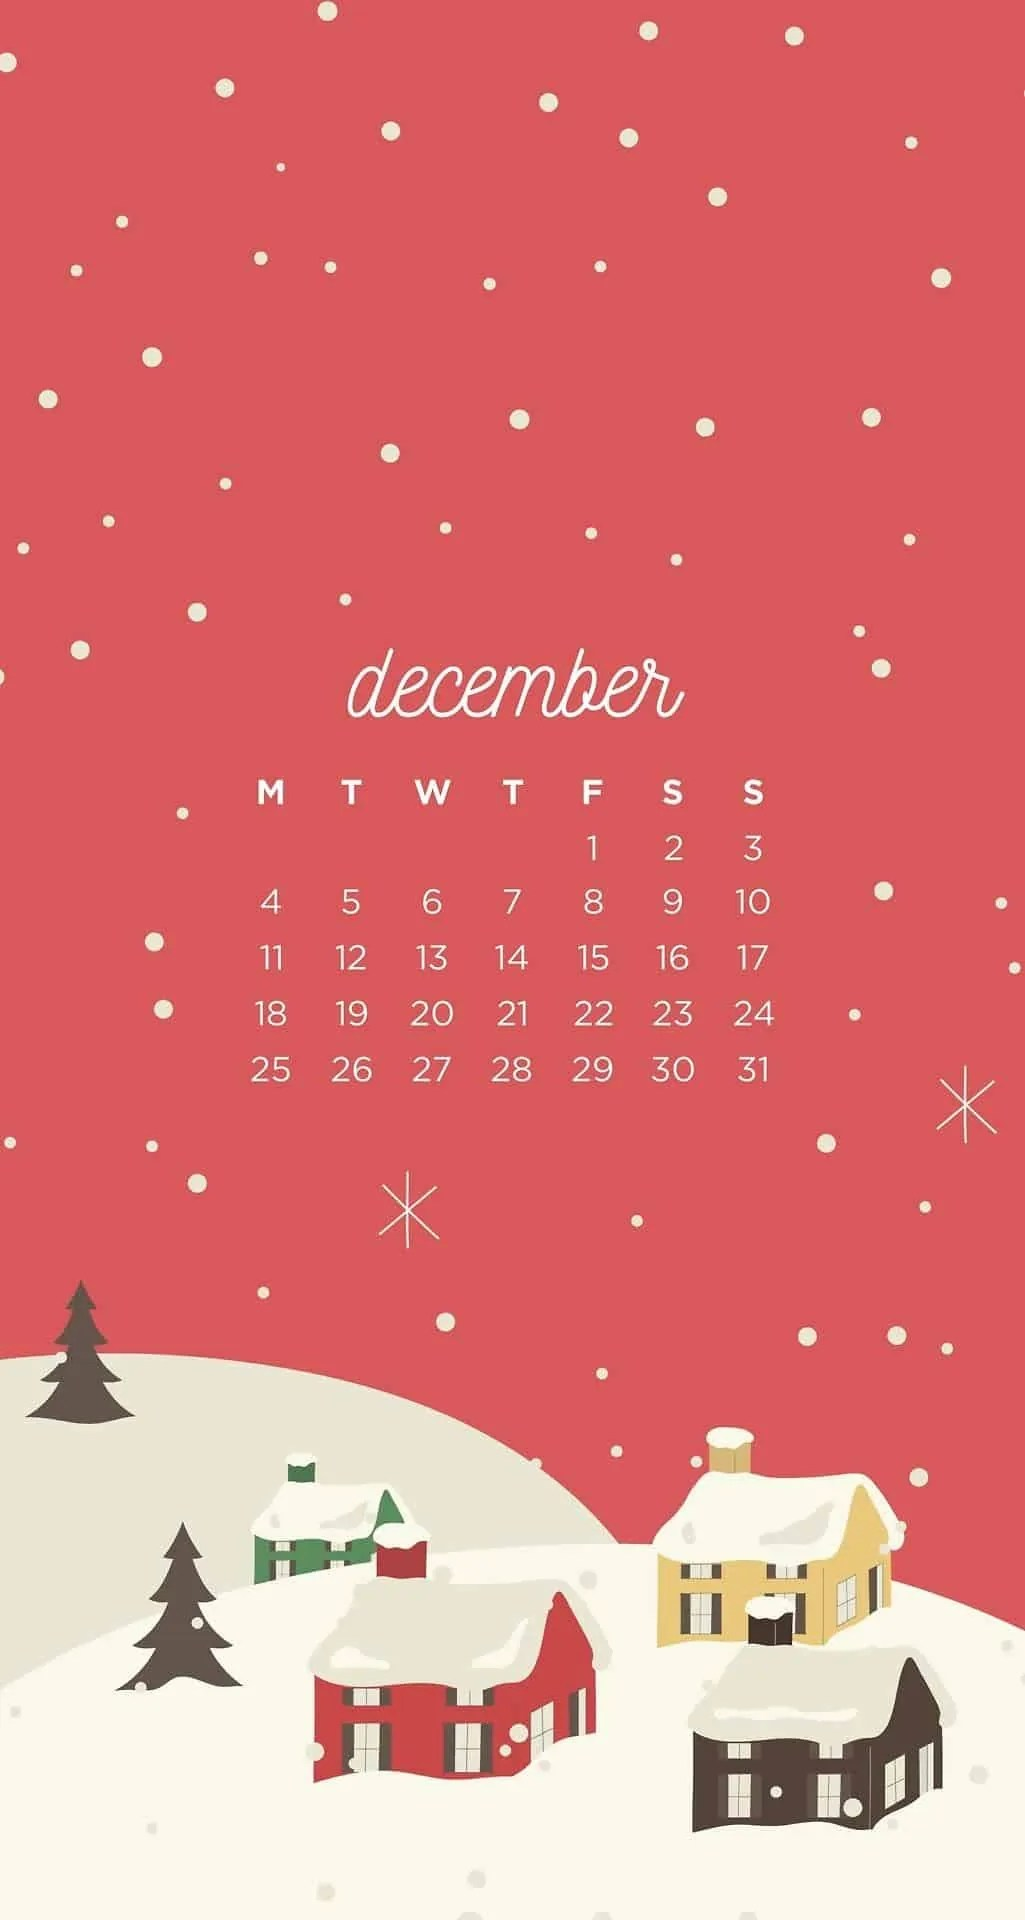 21+ Christmas iPhone Wallpapers you must SEE! 111